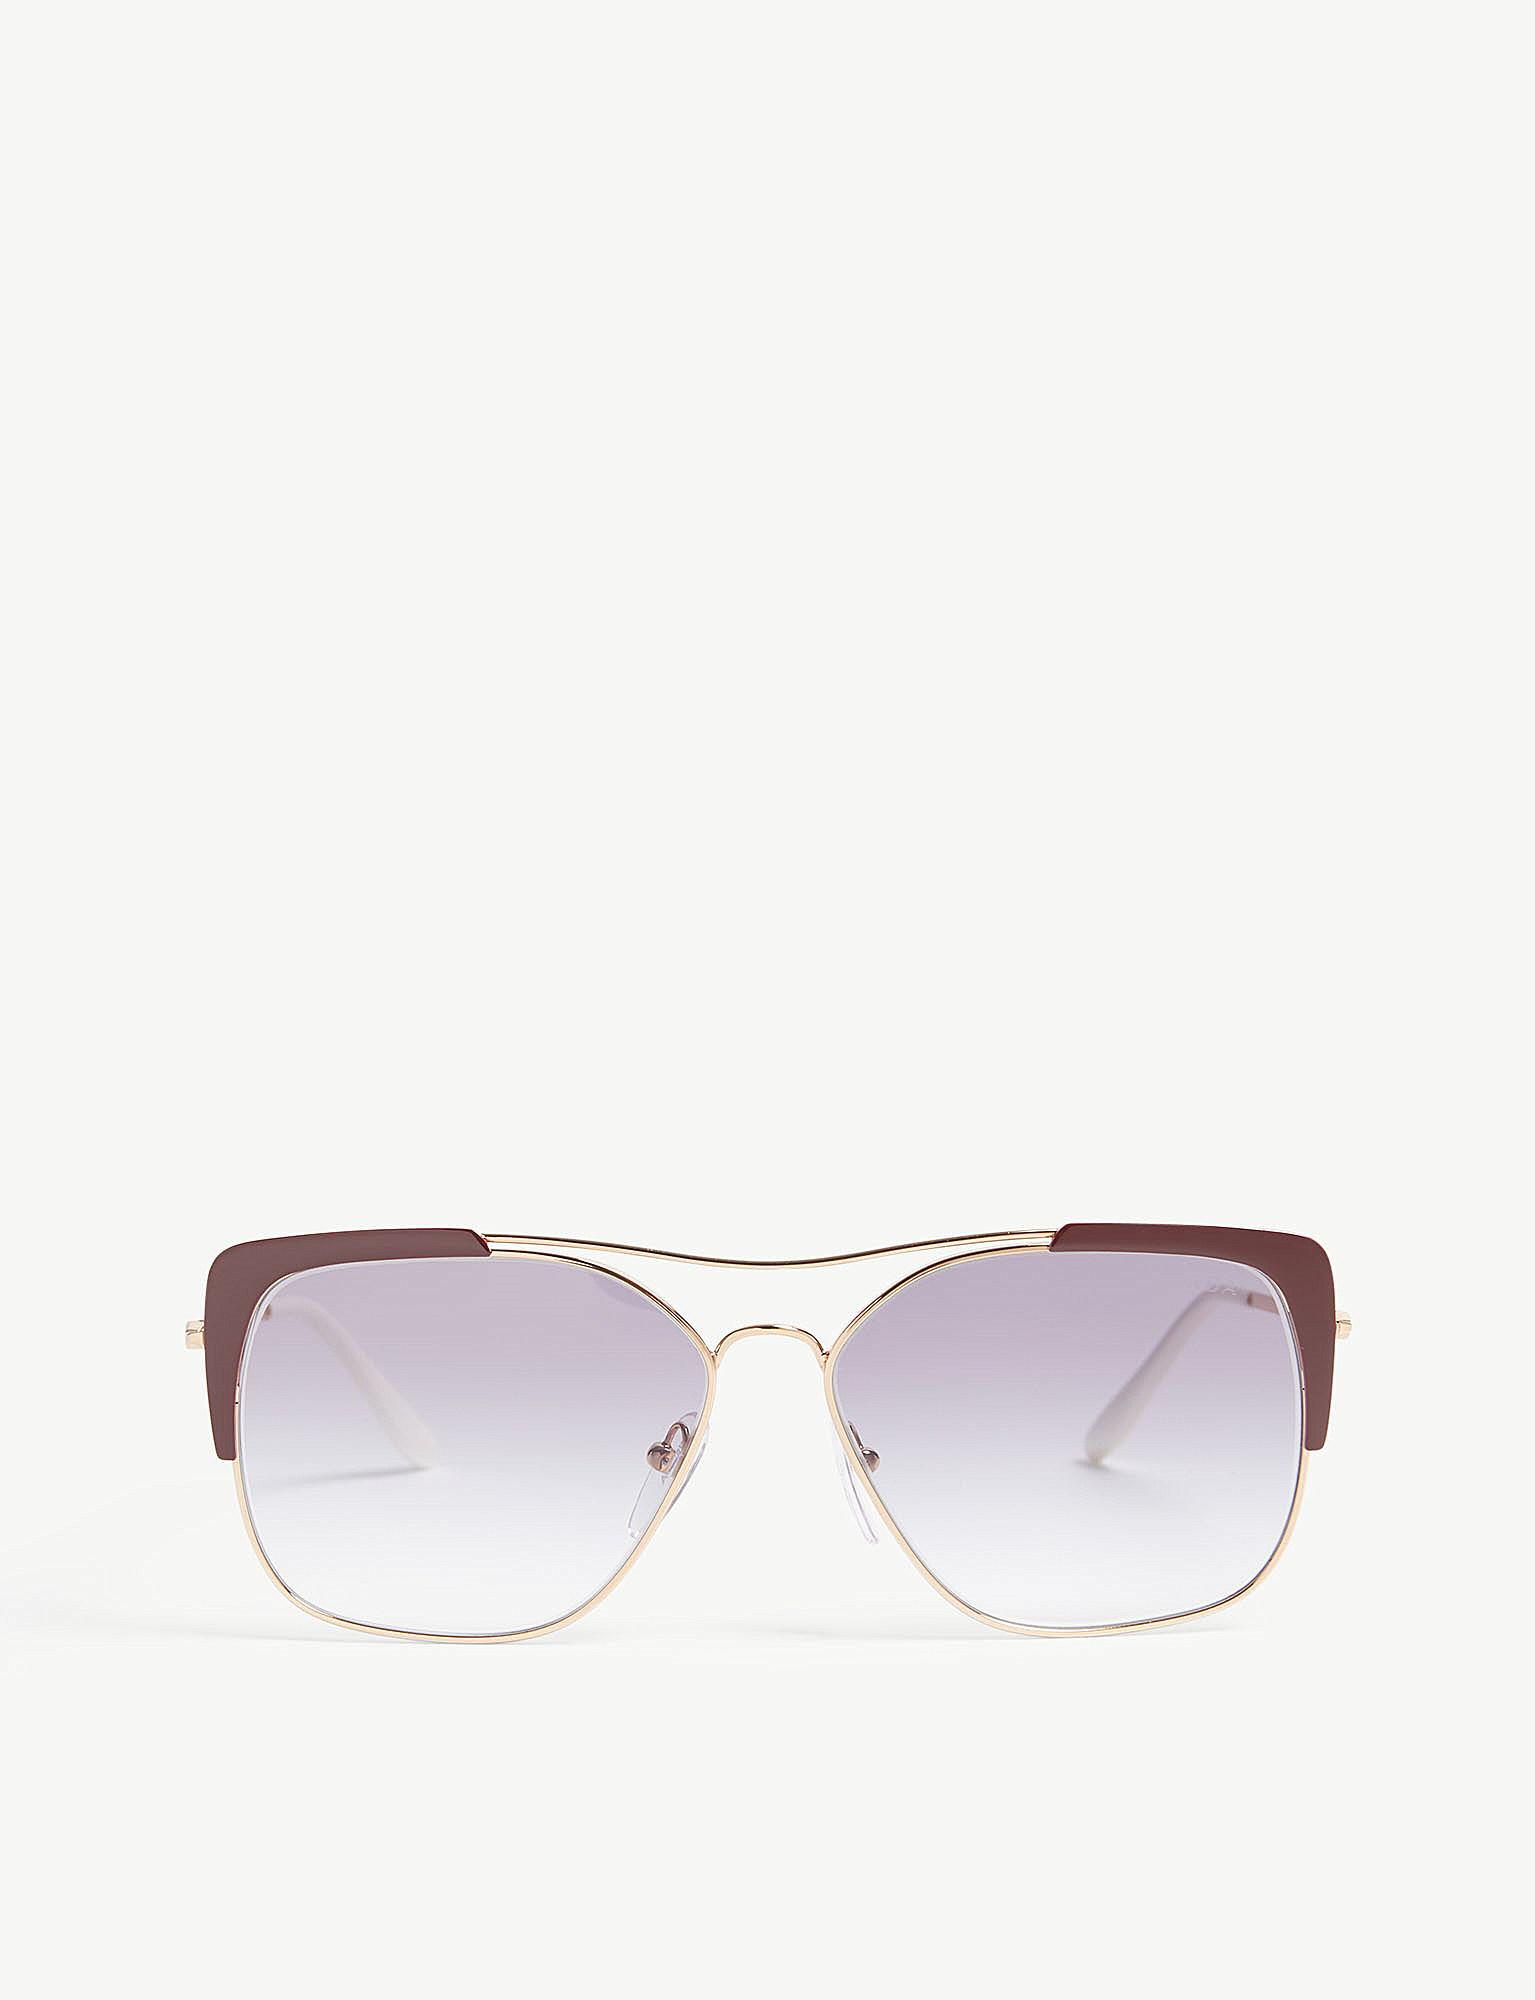 486517e83bd Lyst - Prada Womens Bordeaux Red 0pr 54vs Sunglasses